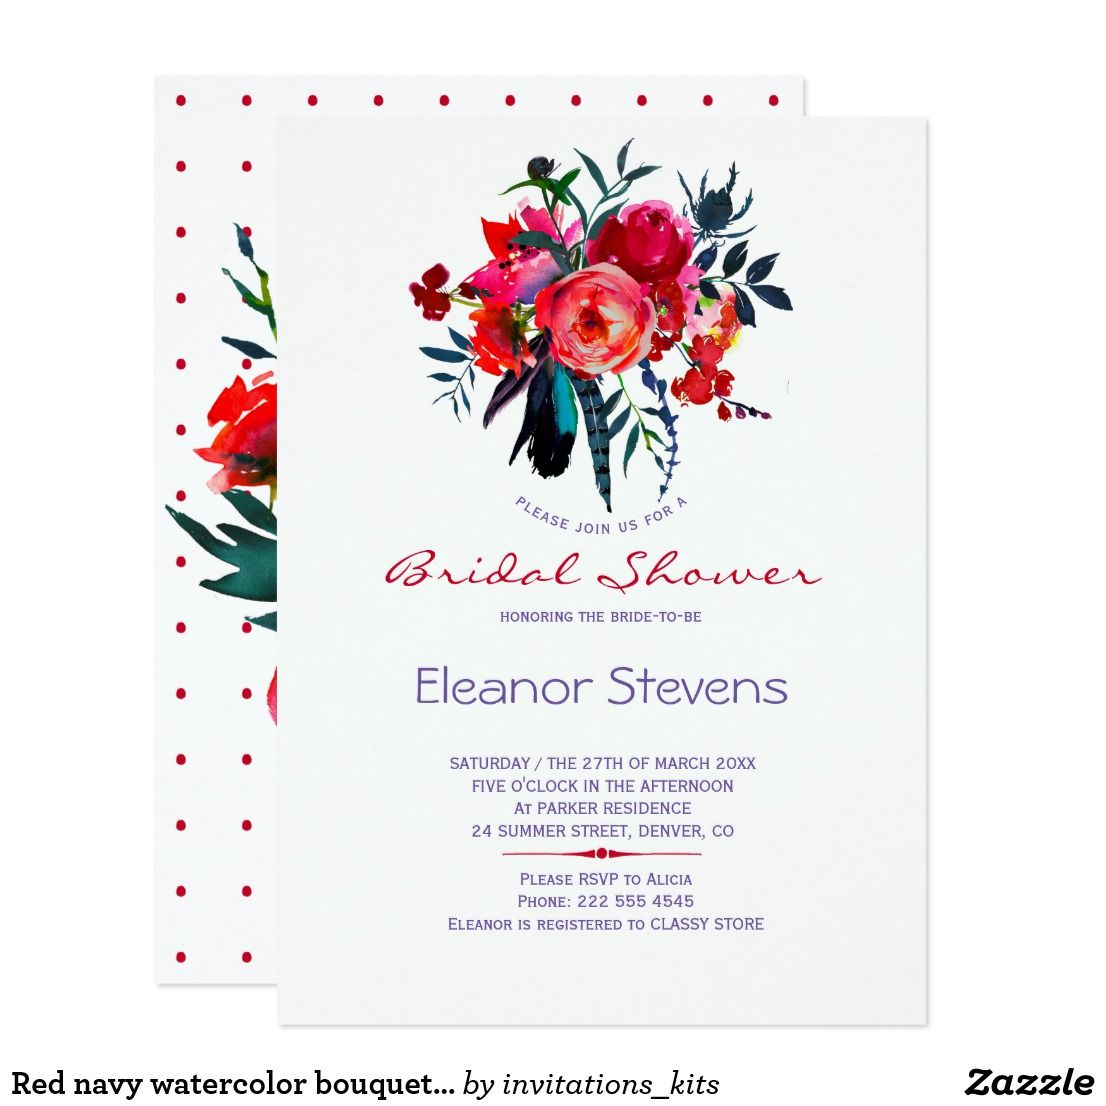 eeb8249a4c62 Red navy watercolor bouquet bridal shower invite Floral bridal shower party  invitation template with a beautiful